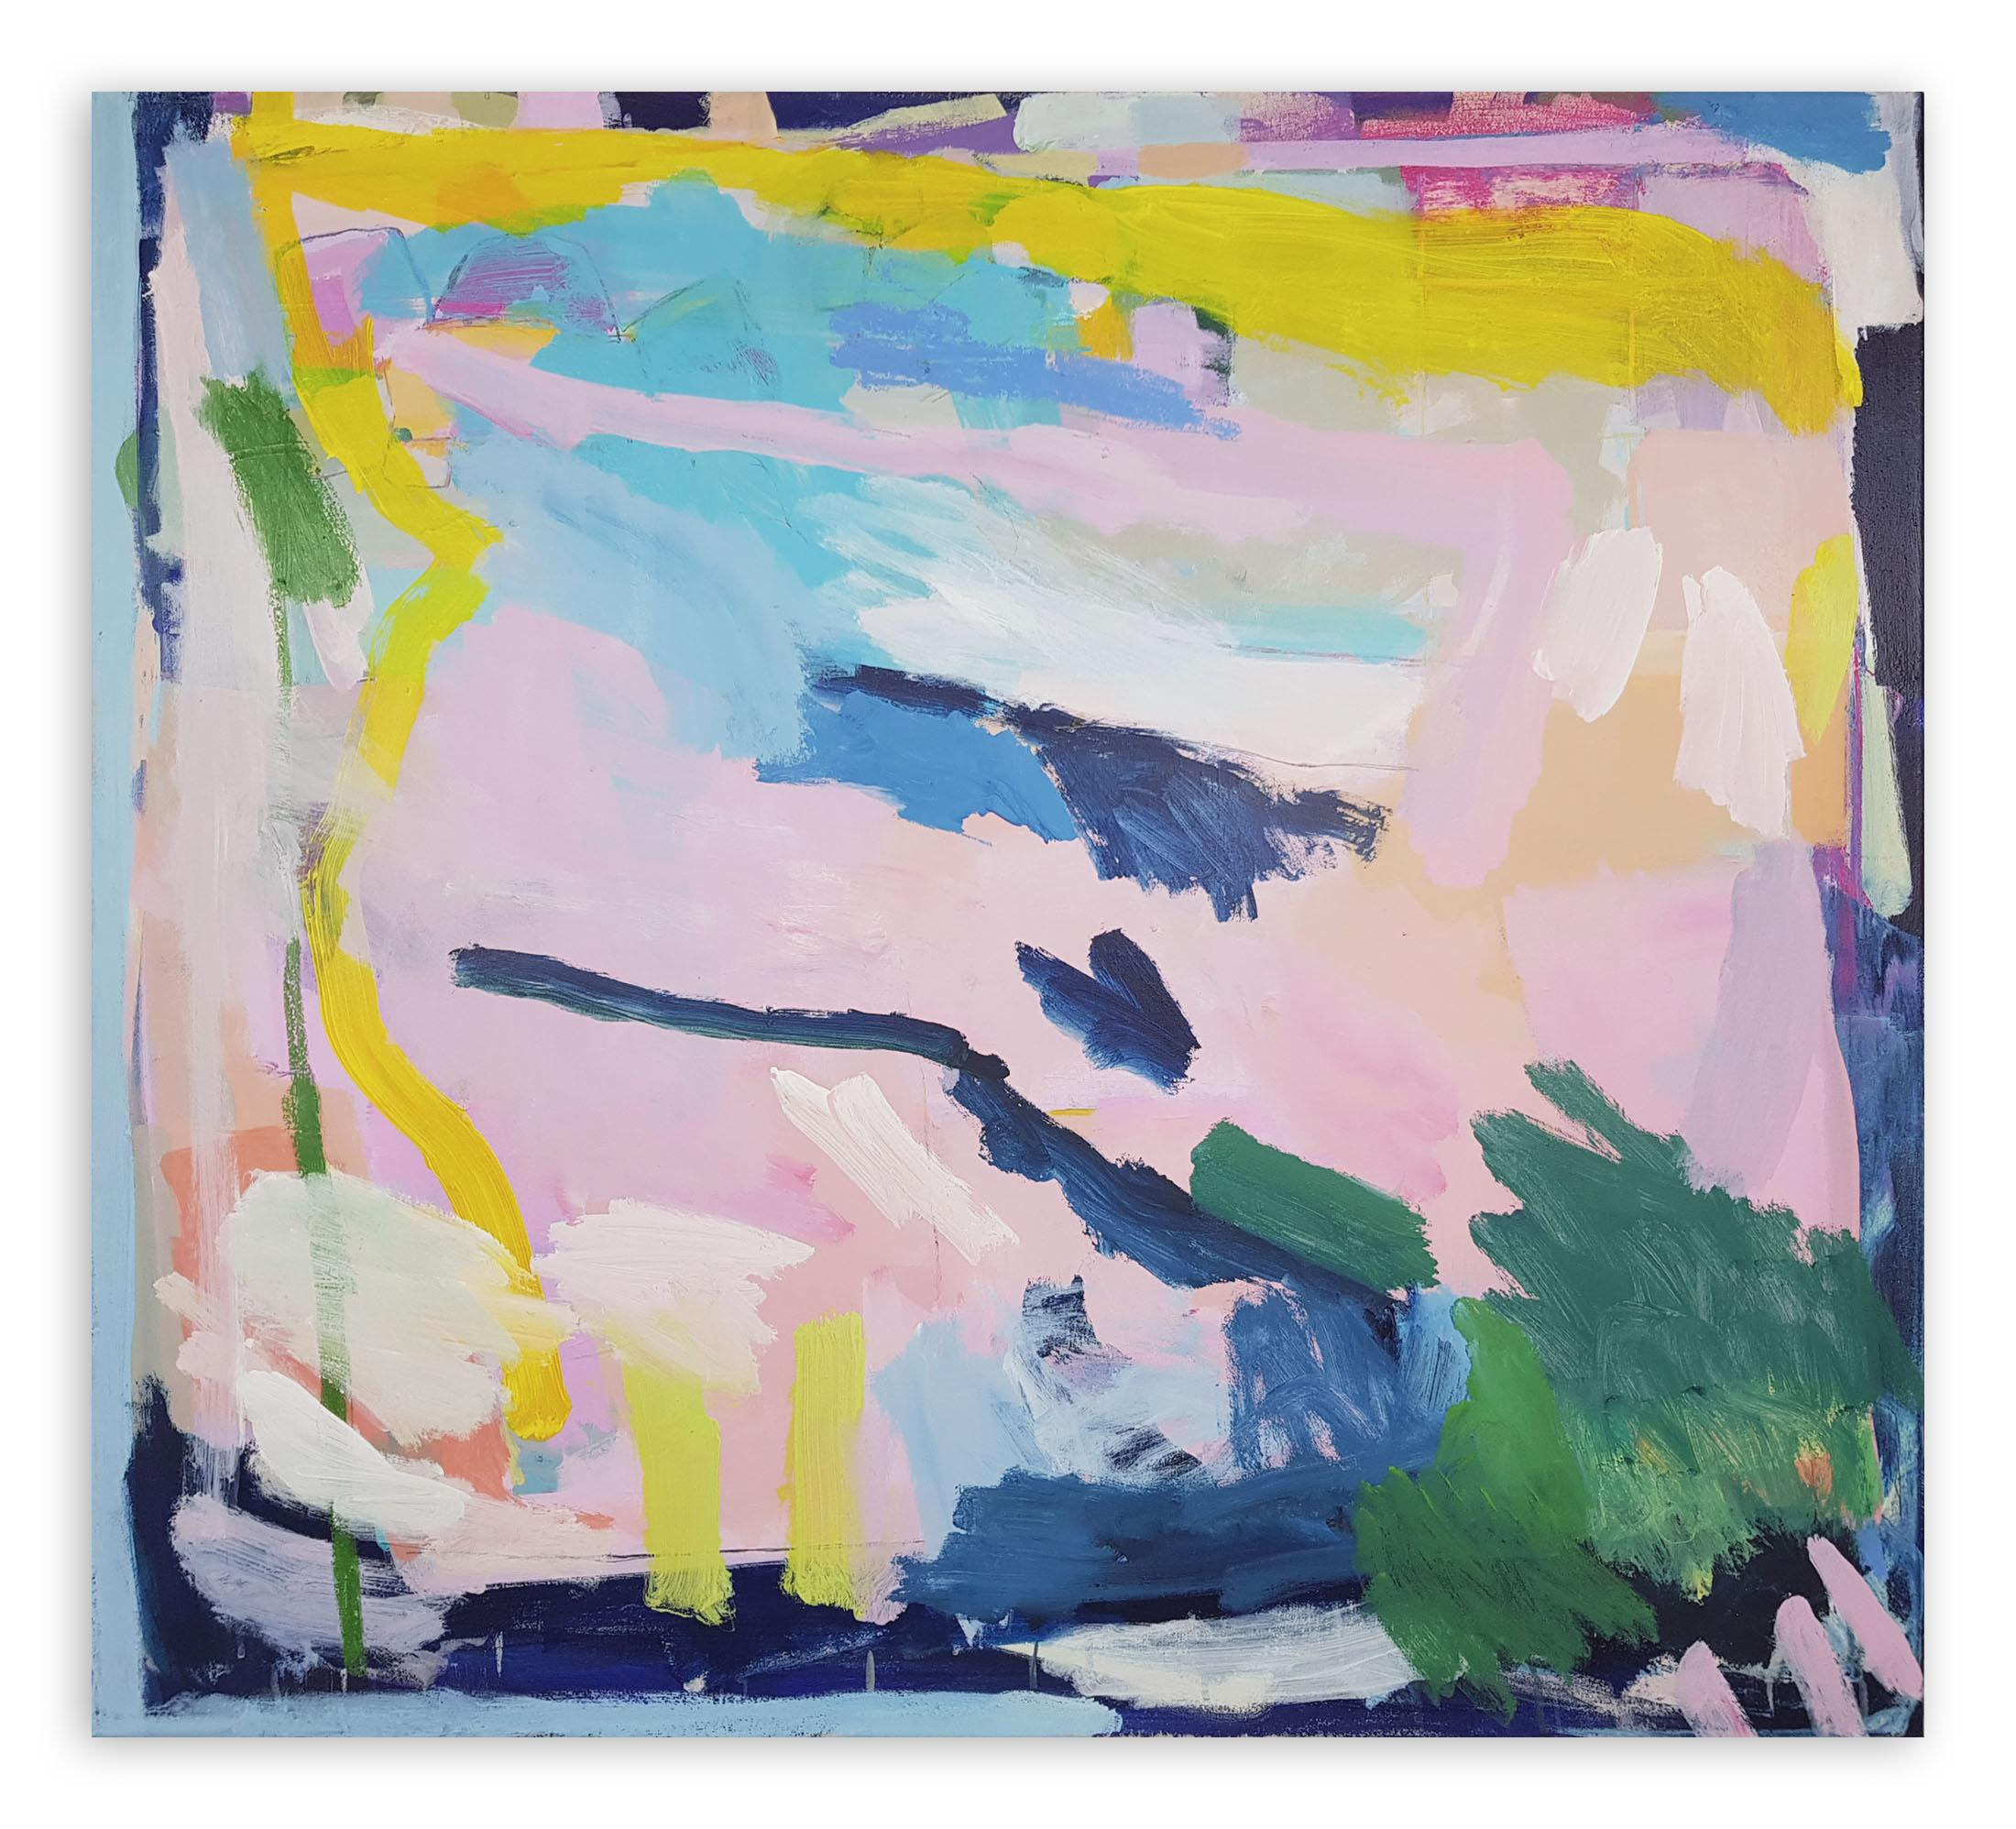 Untitled 55781 (Abstract painting)